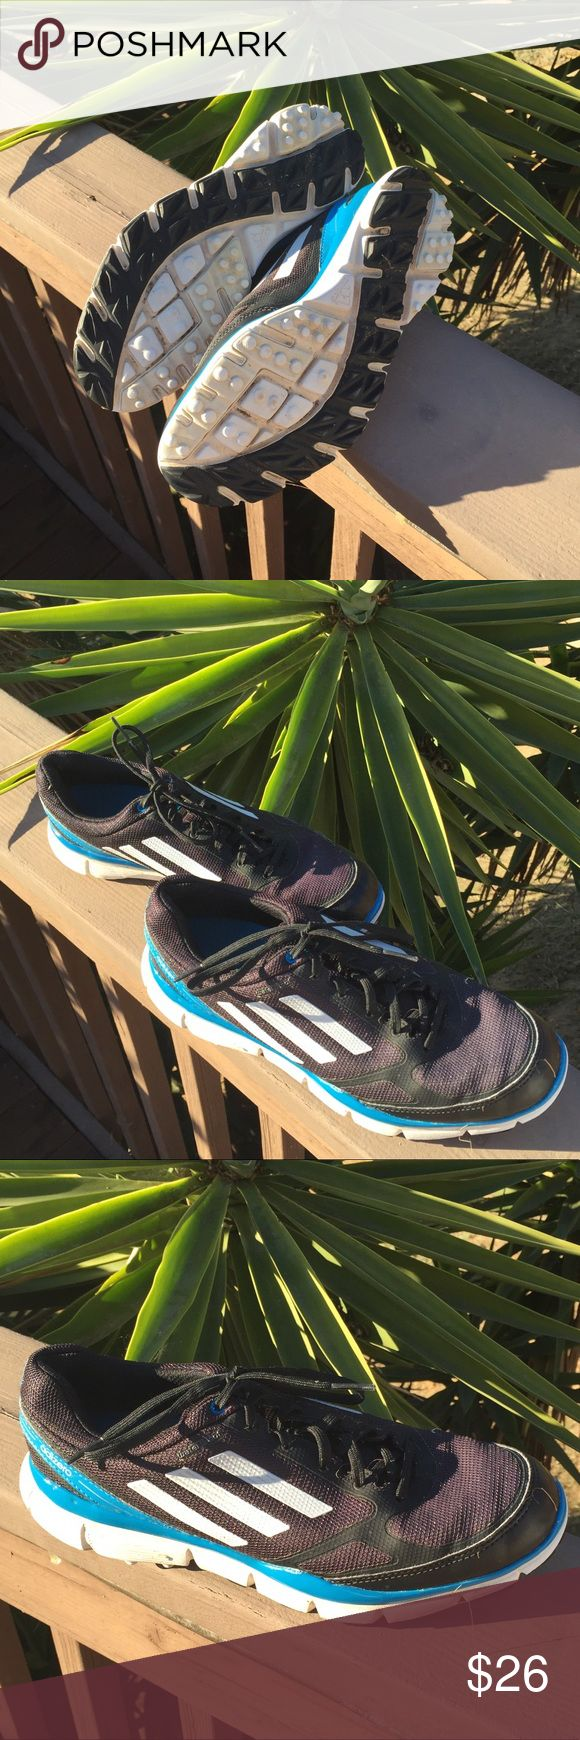 Adidas Ladies Golf Shoes Size 9 Waterproof, Good Used Condition adidas Shoes Athletic Shoes